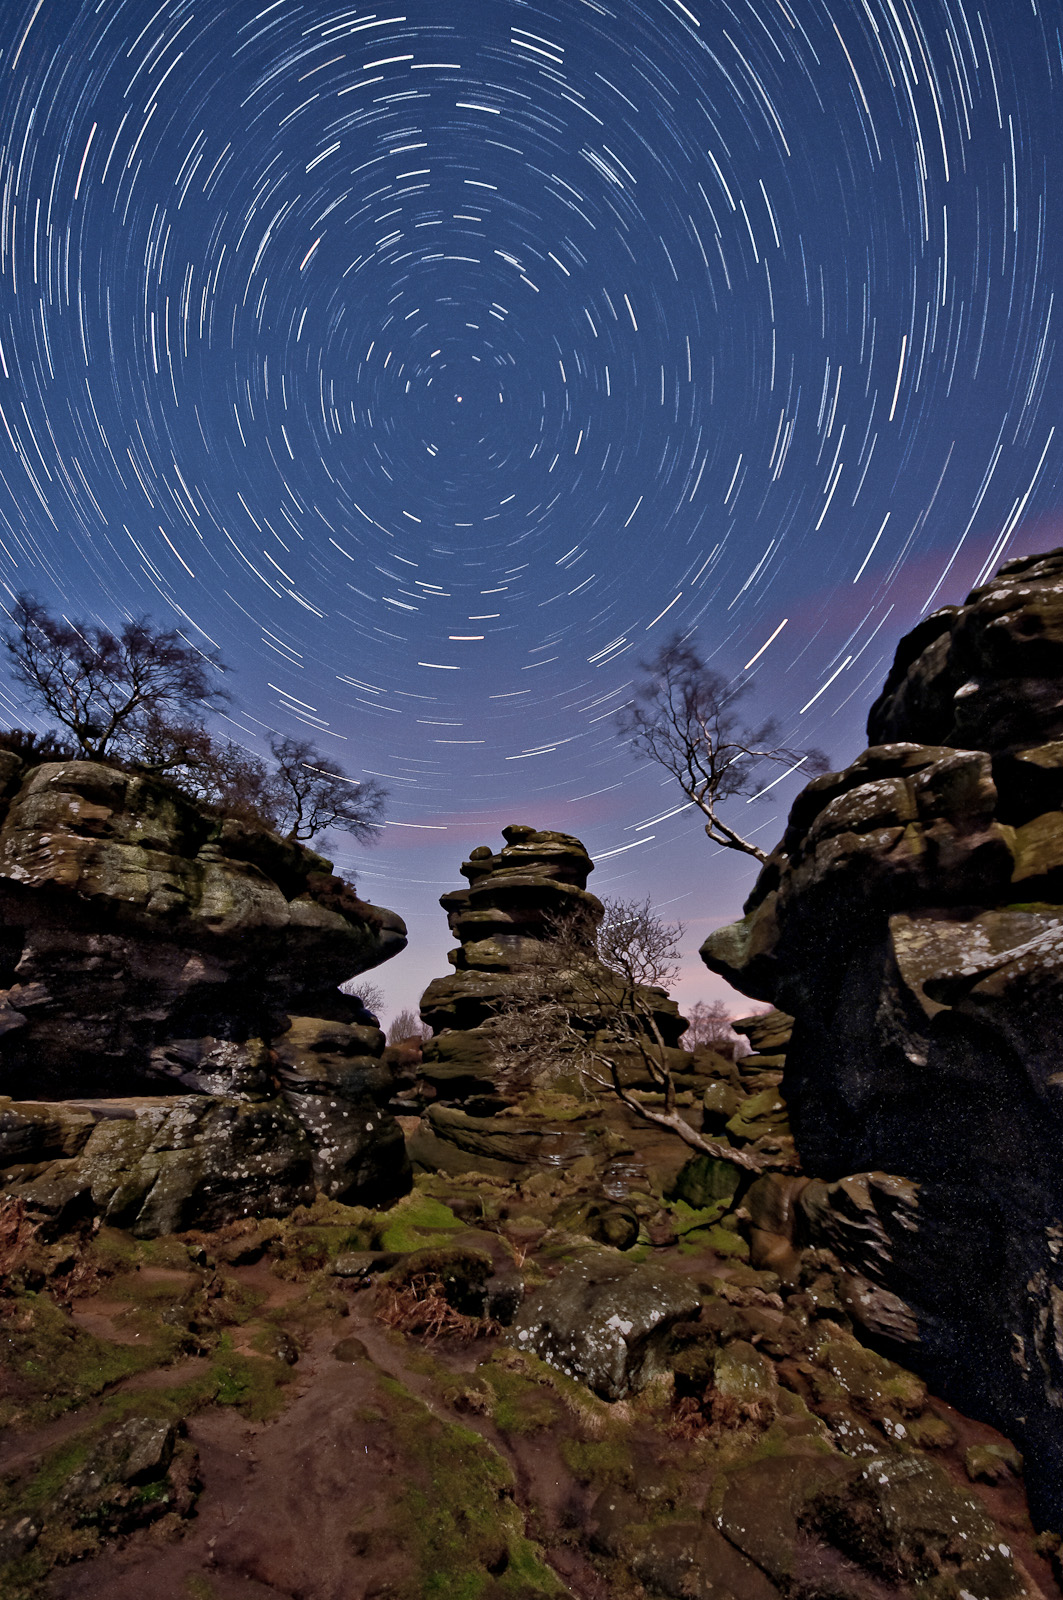 Vaidotas Mišeikis - Brimham Rocks in North Yorkshire.